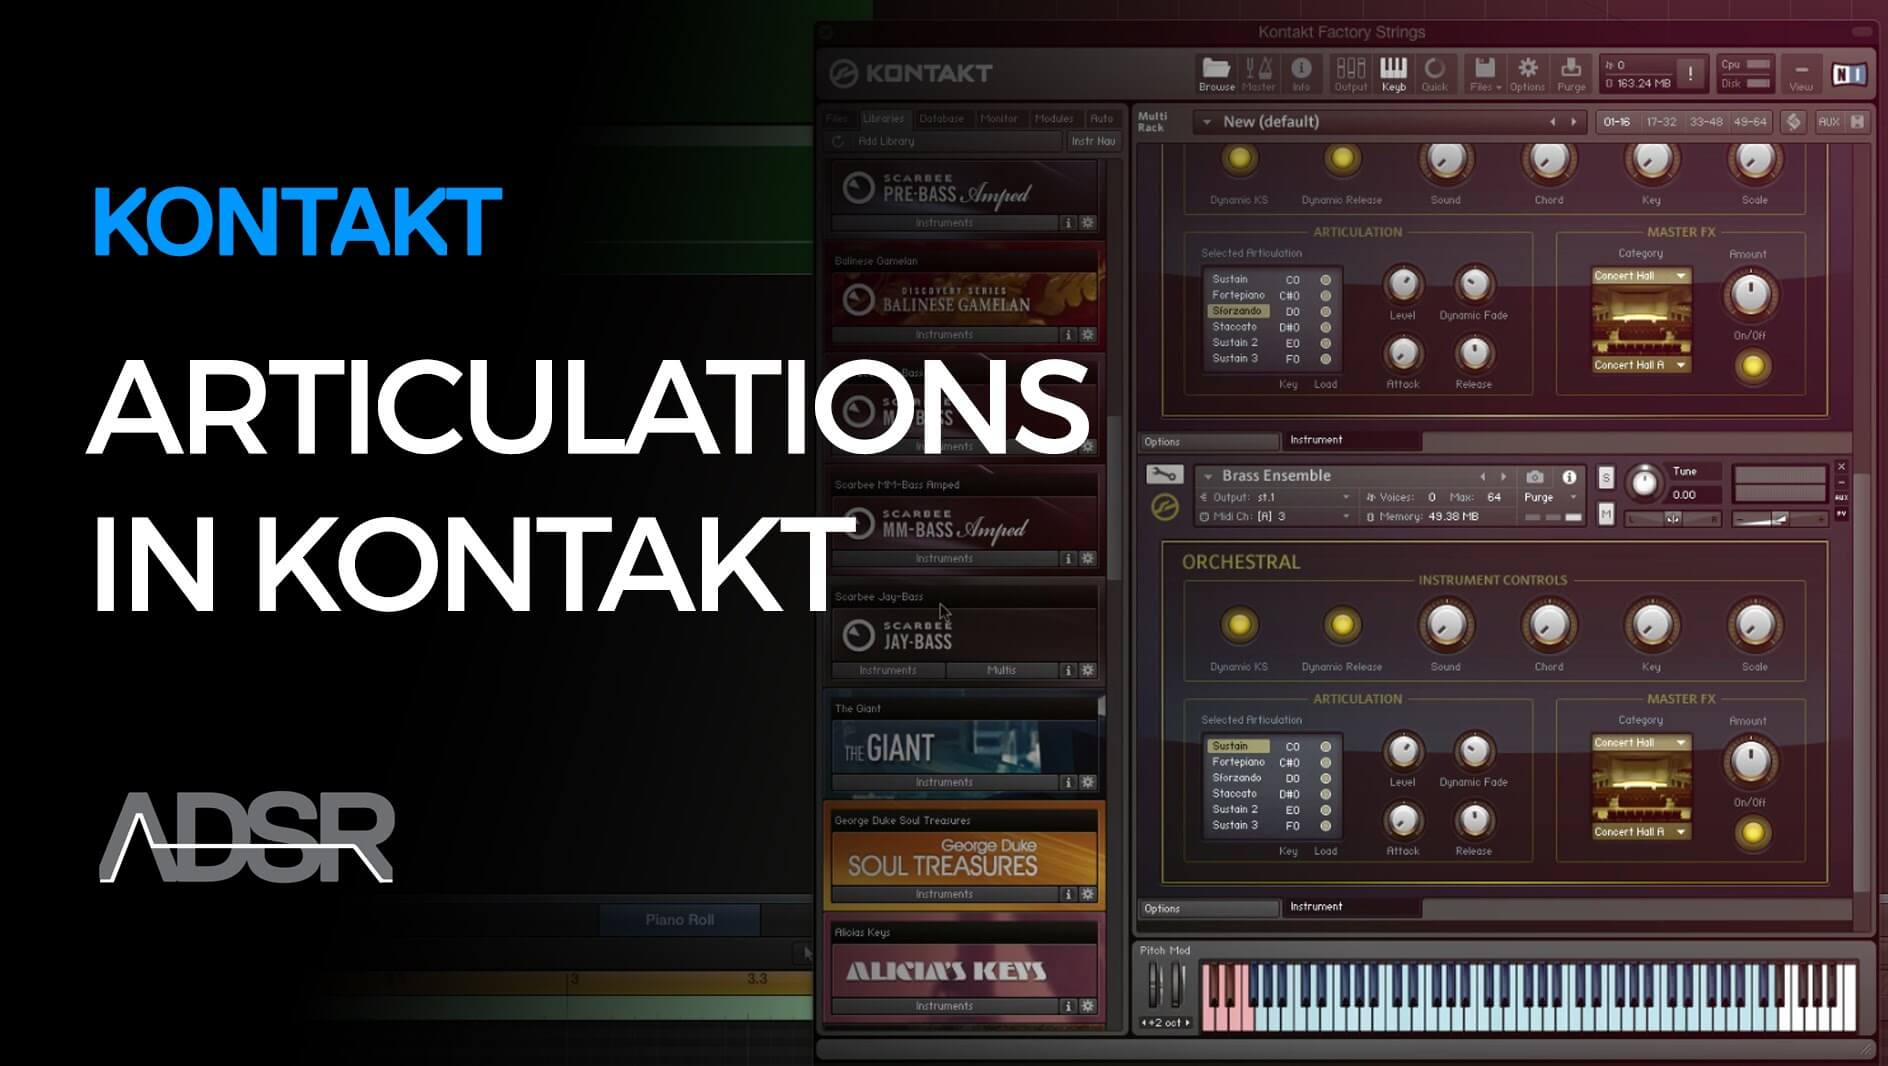 Articulations in Kontakt